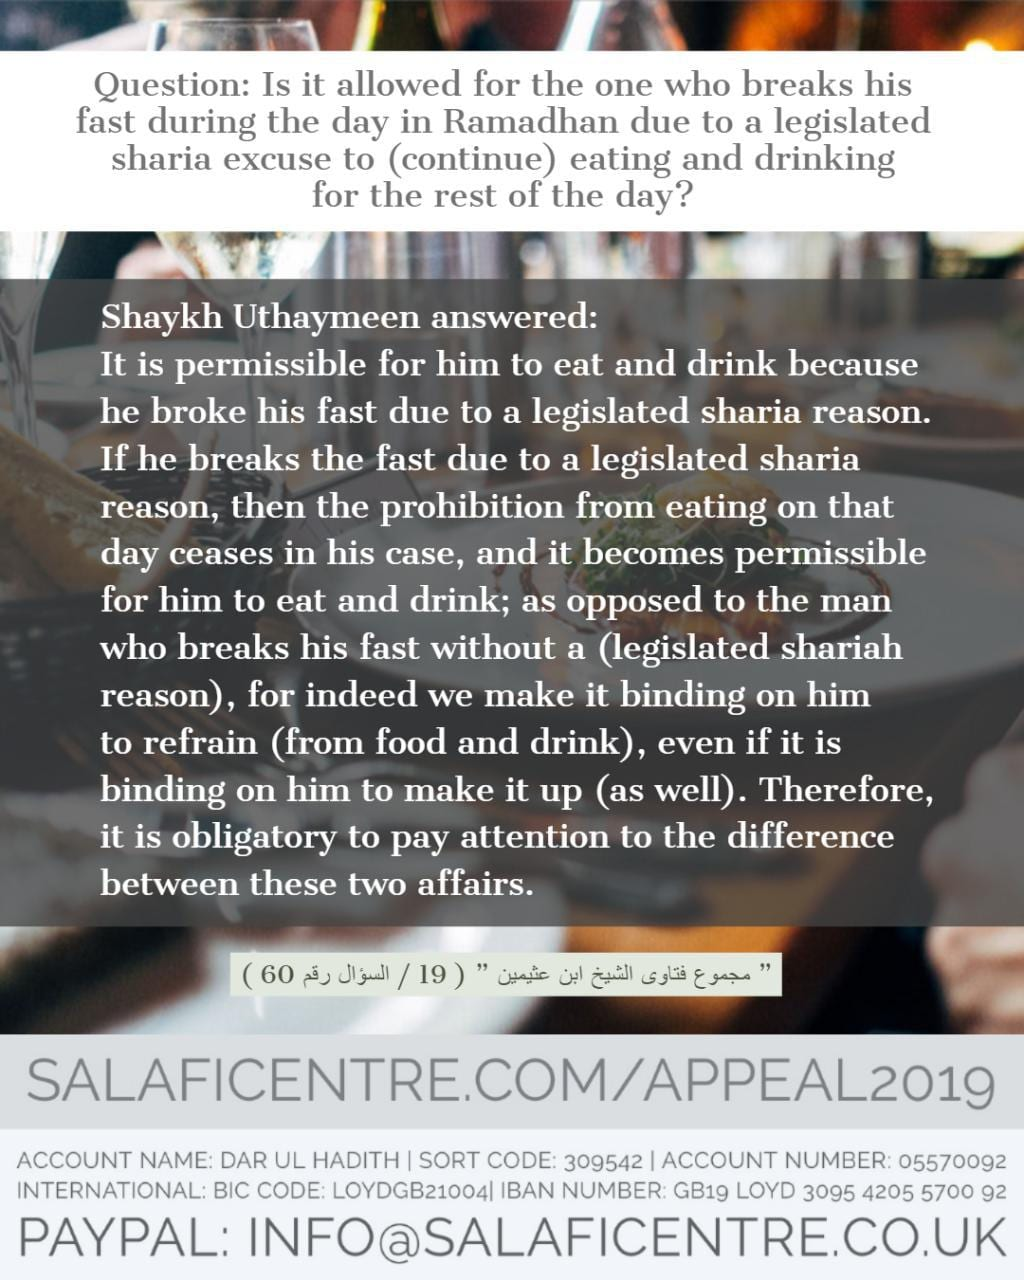 Allowance of Eating During Day in Ramadhaan When Breaking Fast Due to A Legislated Reason – Shaykh Uthaymeen